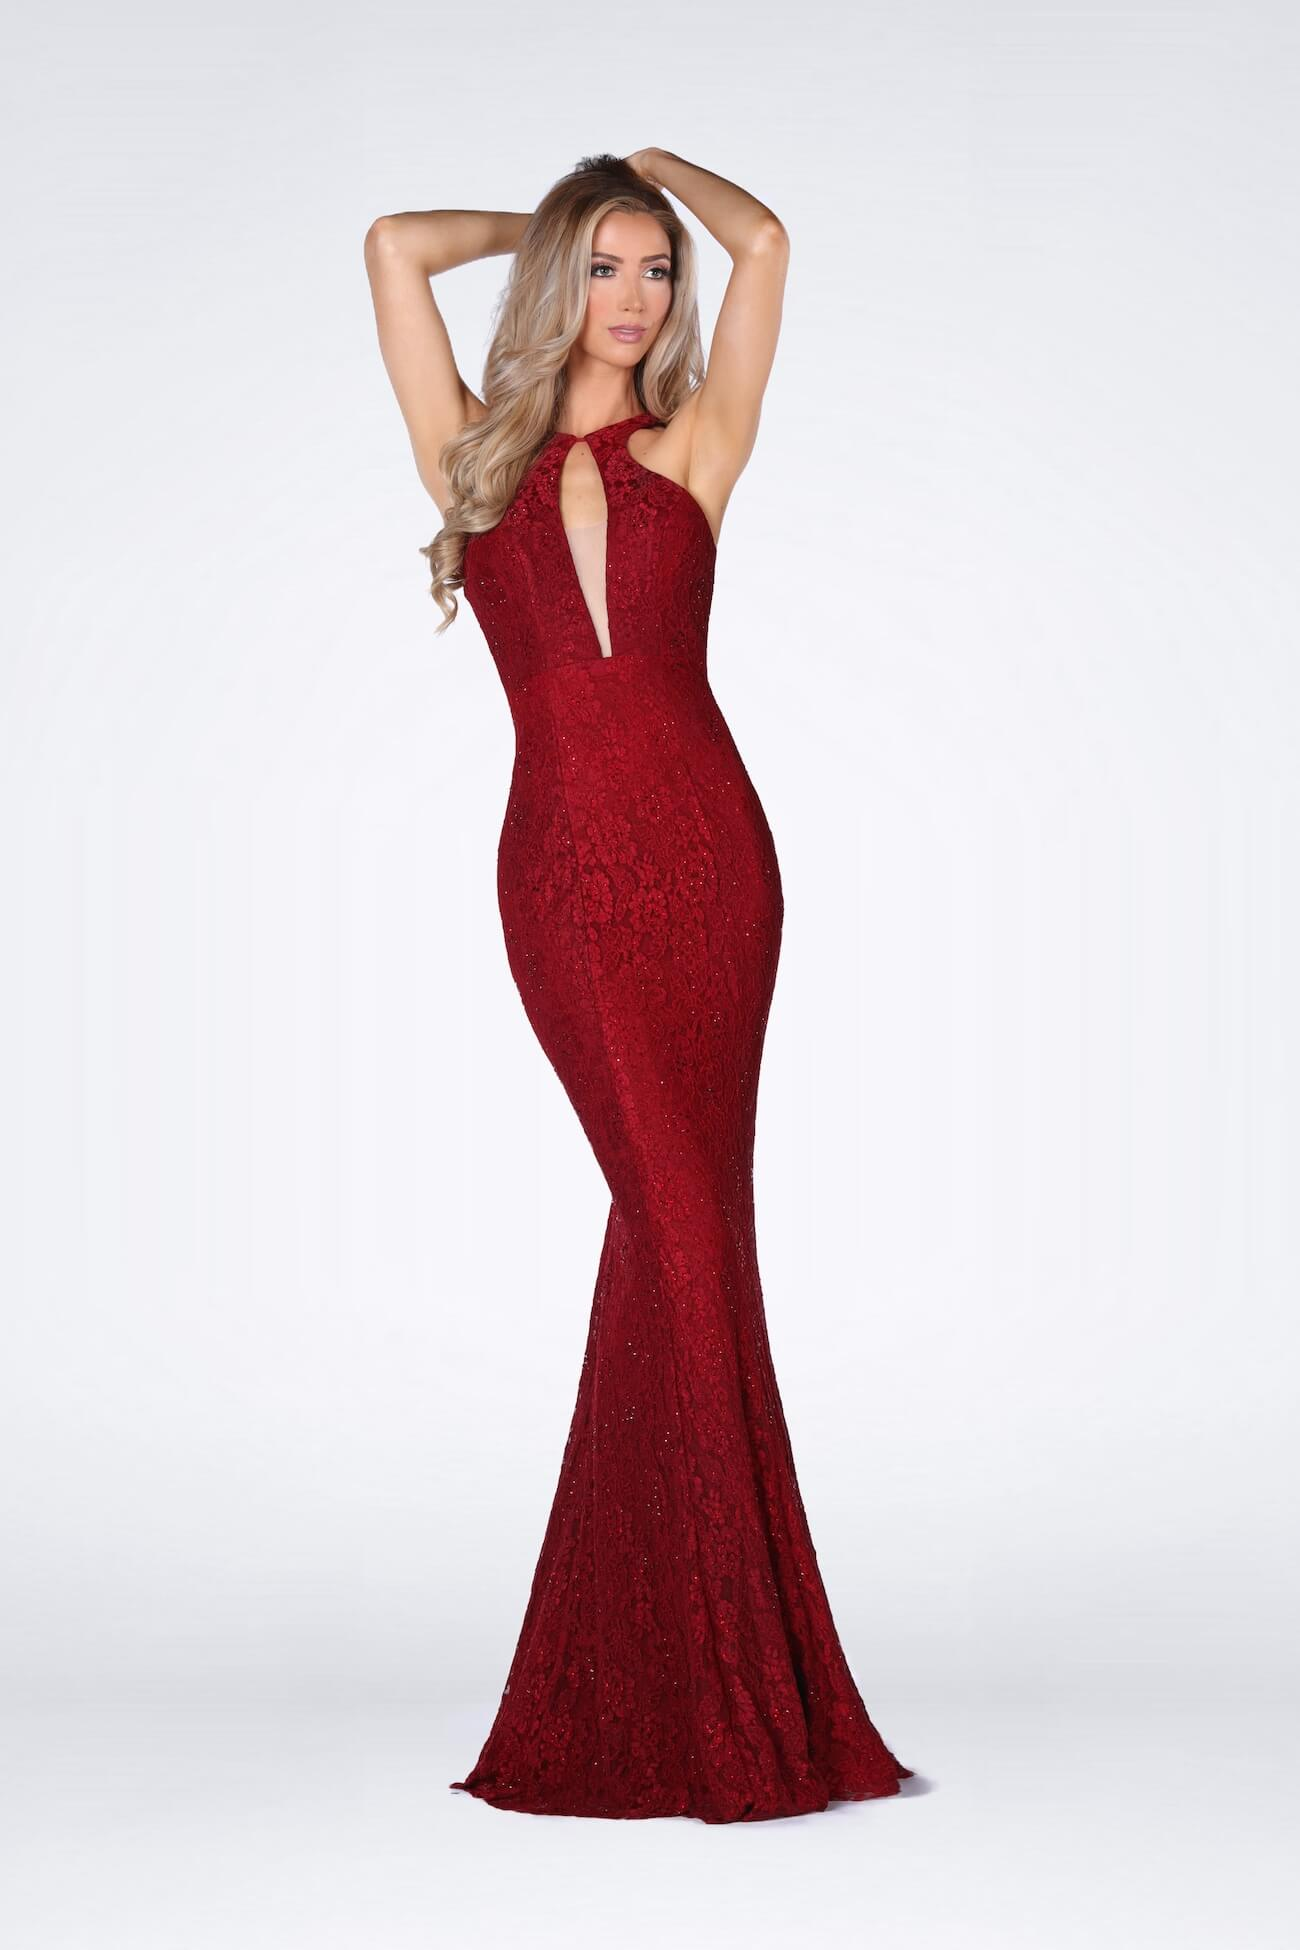 Vienna Red Size 2 Floral Backless Mermaid Dress on Queenly